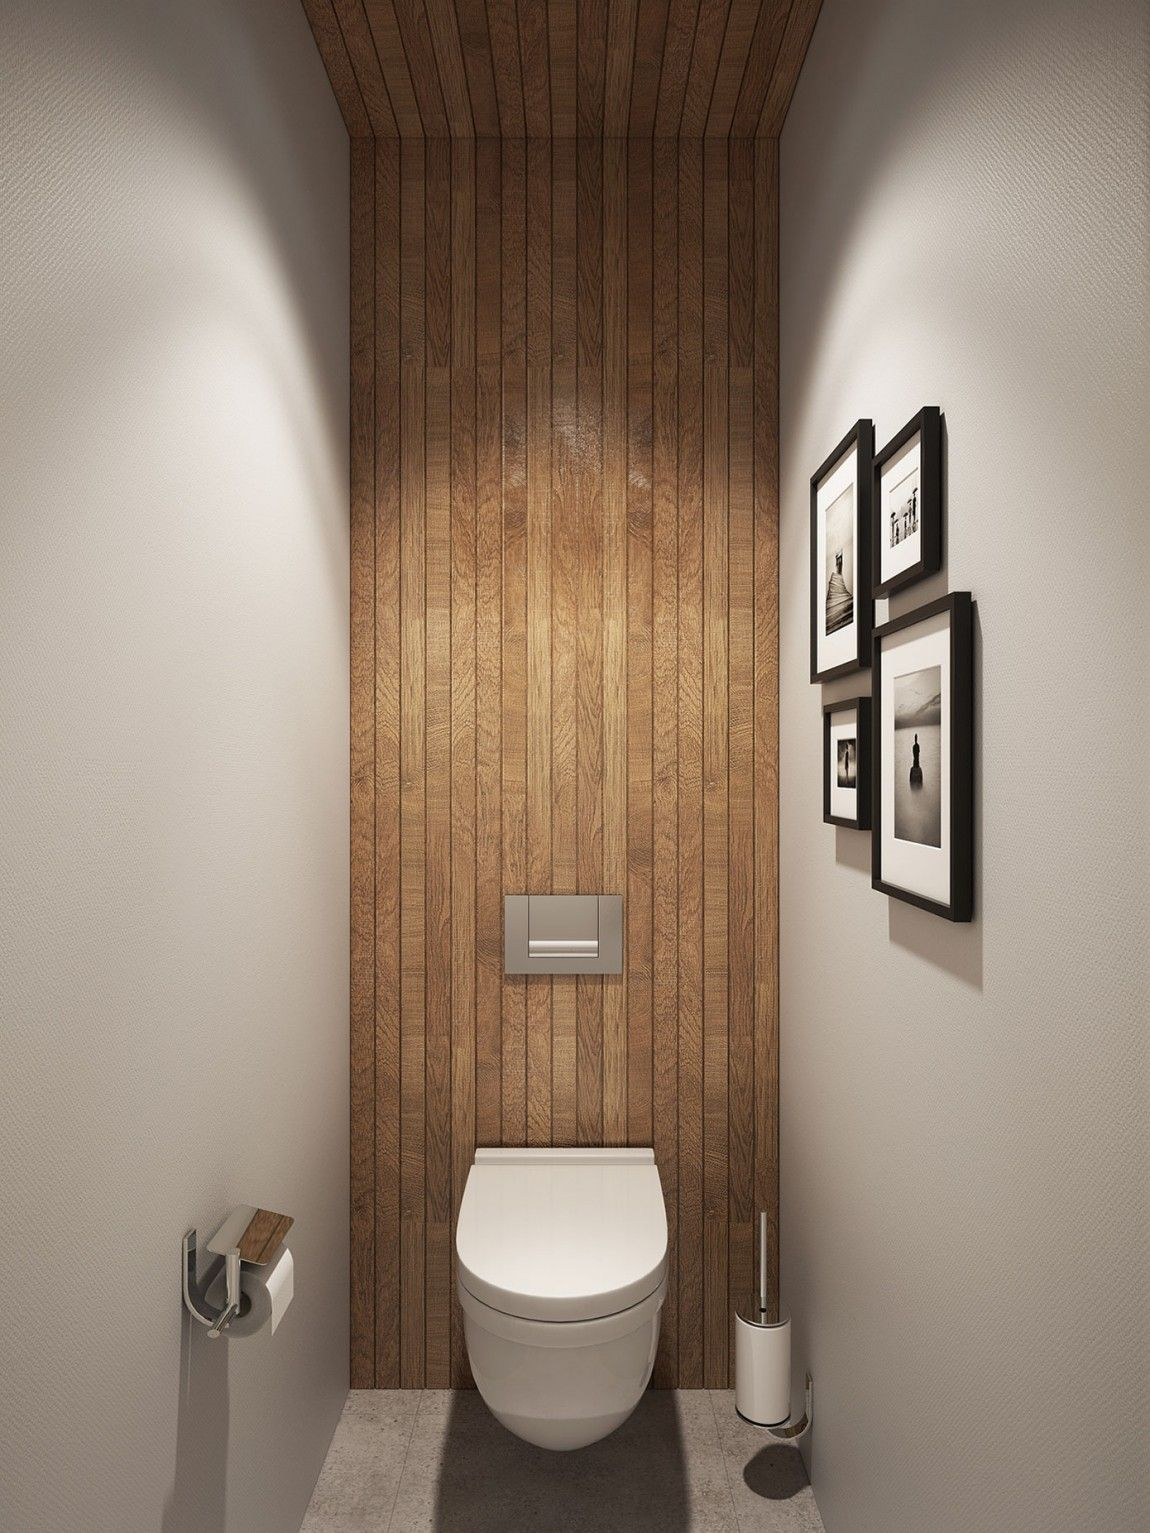 Bad Renovieren Toilette Versetzen Going Scandinavian In Style Space Savvy Apartment In Moscow